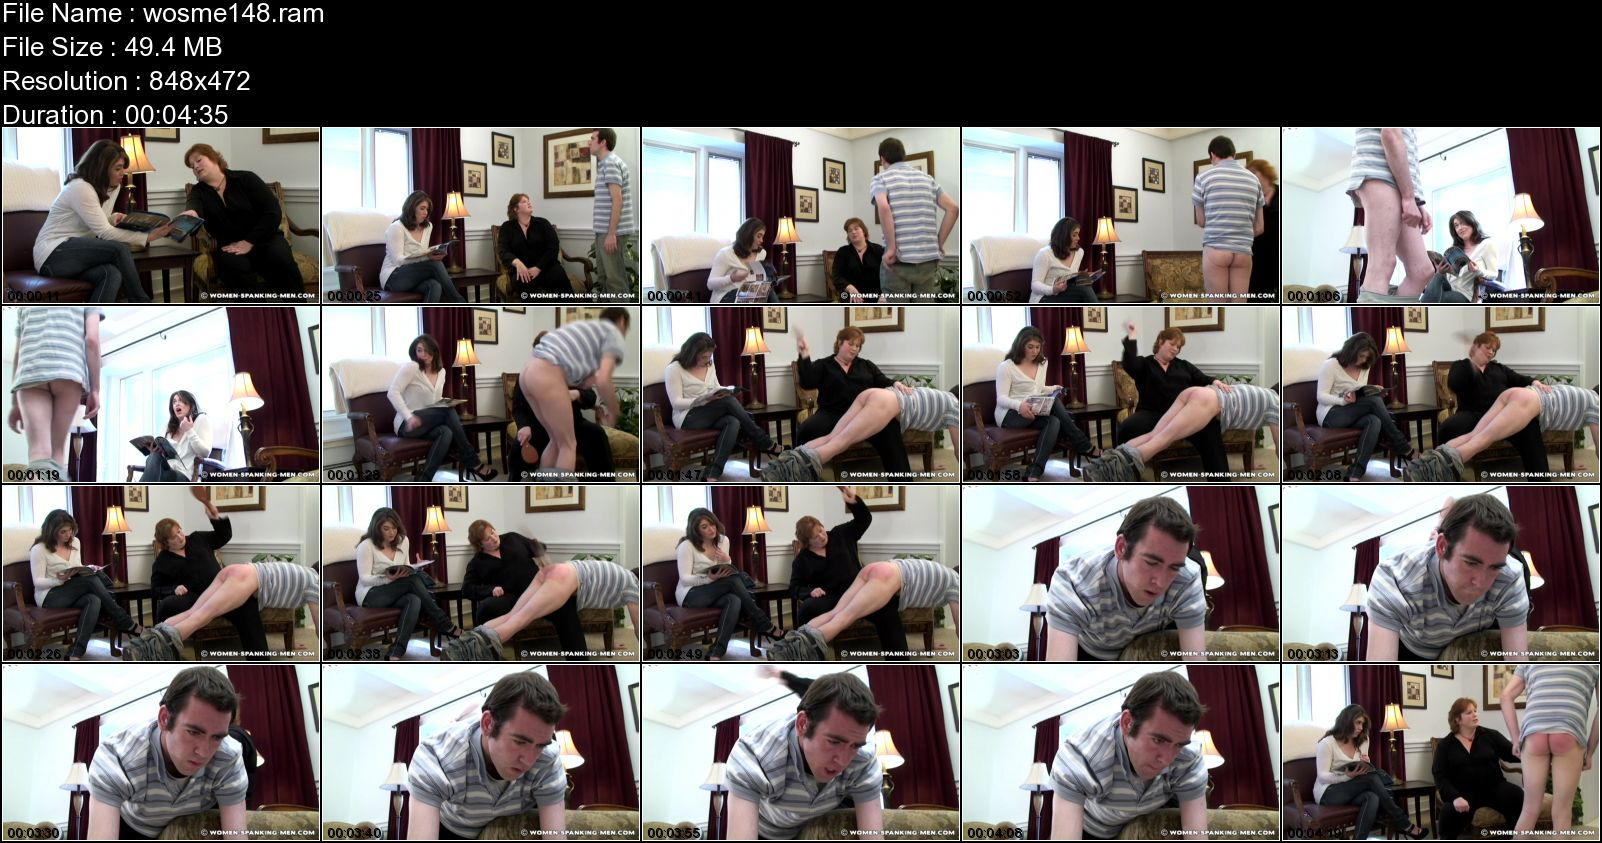 Brian, Miss Kay In Scene: Brian is Spanked by Miss Kay for Coming Home Late - WOMEN-SPANKING-MEN - SD/472p/RAM